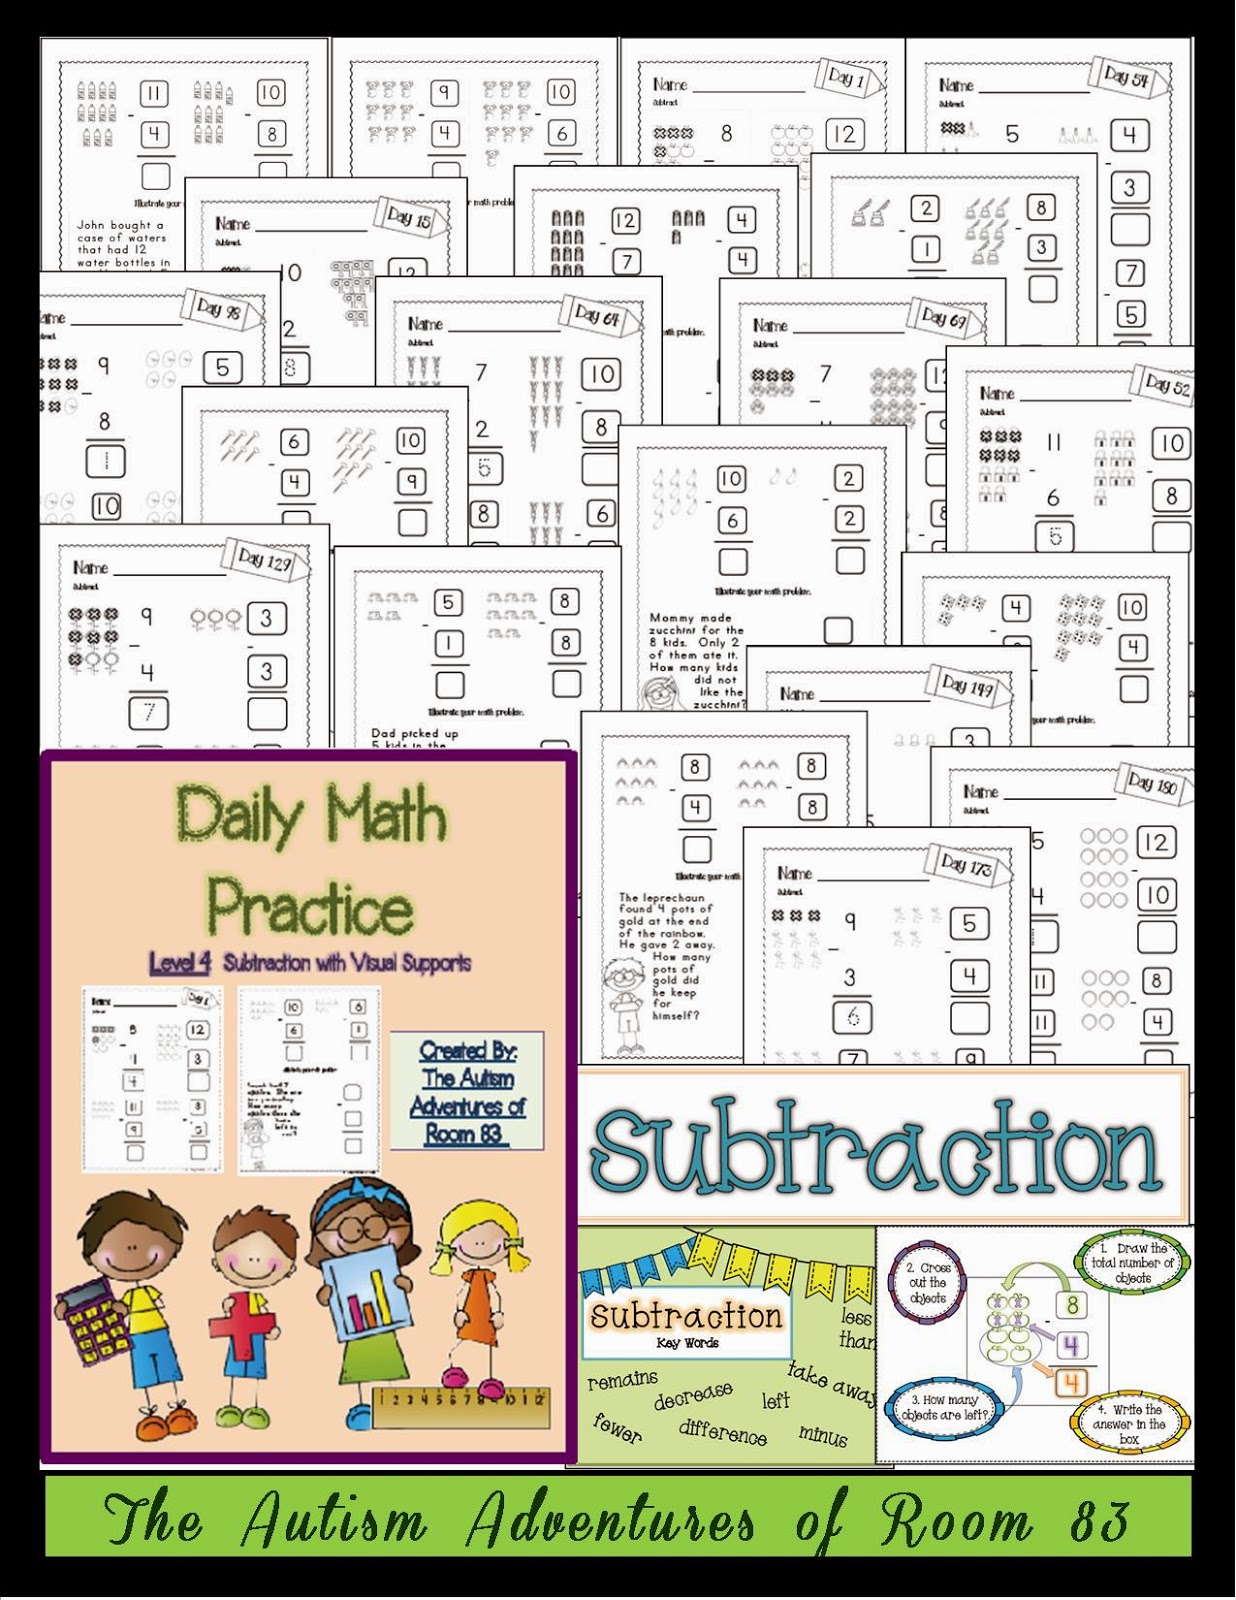 Daily Math Practice Level 4 Subtraction With Visuals